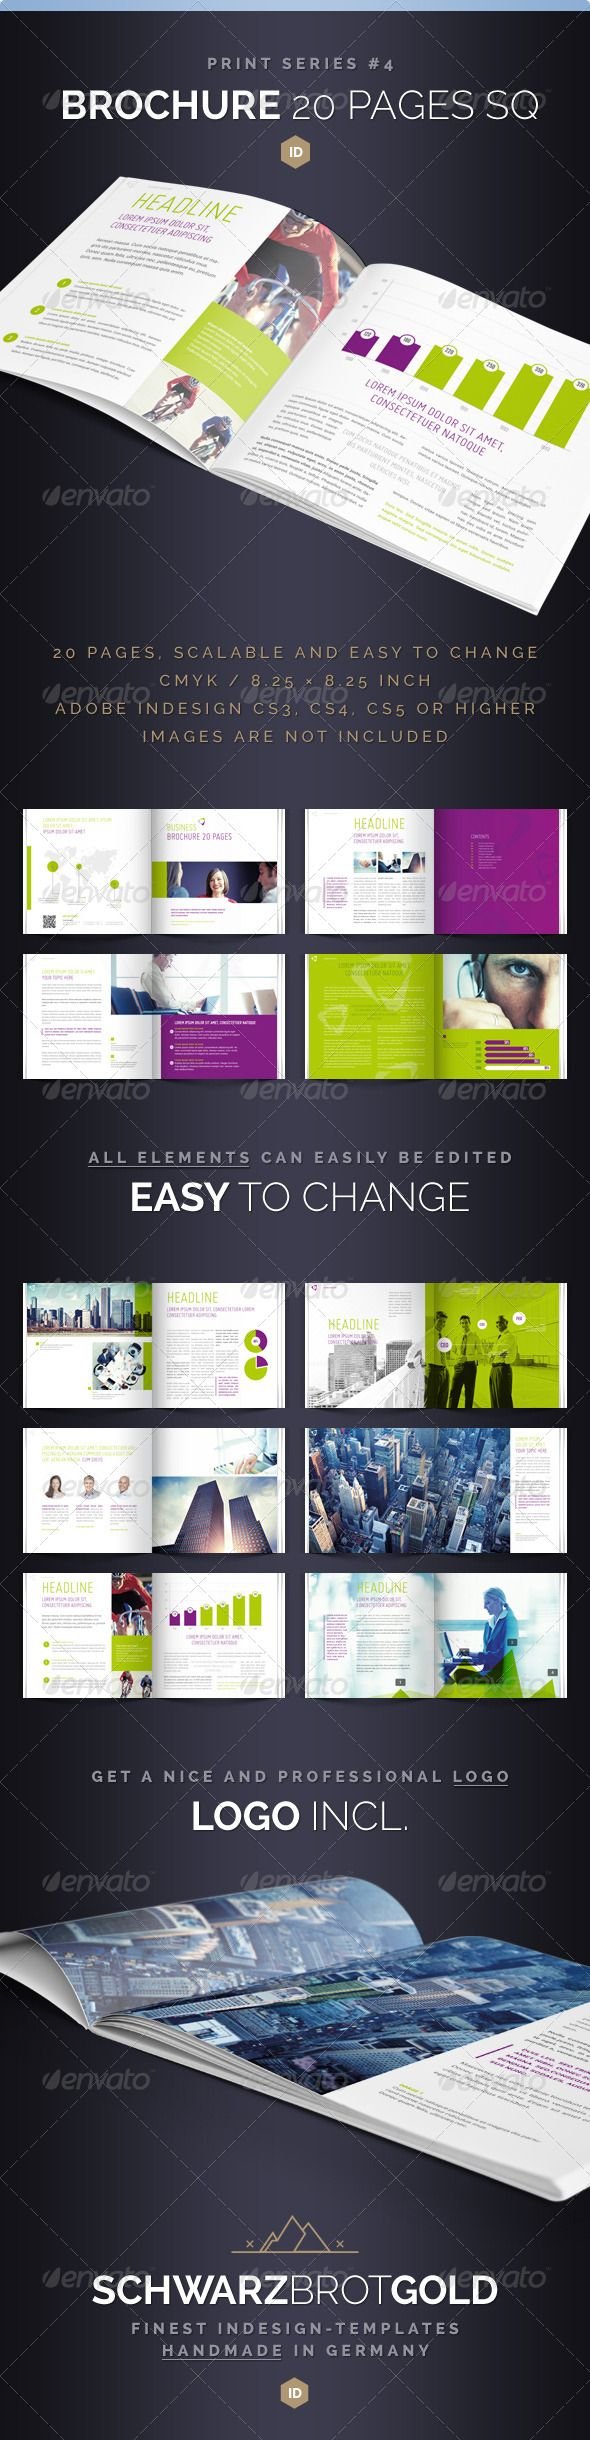 multi page brochure template - 96 best images about print templates on pinterest adobe